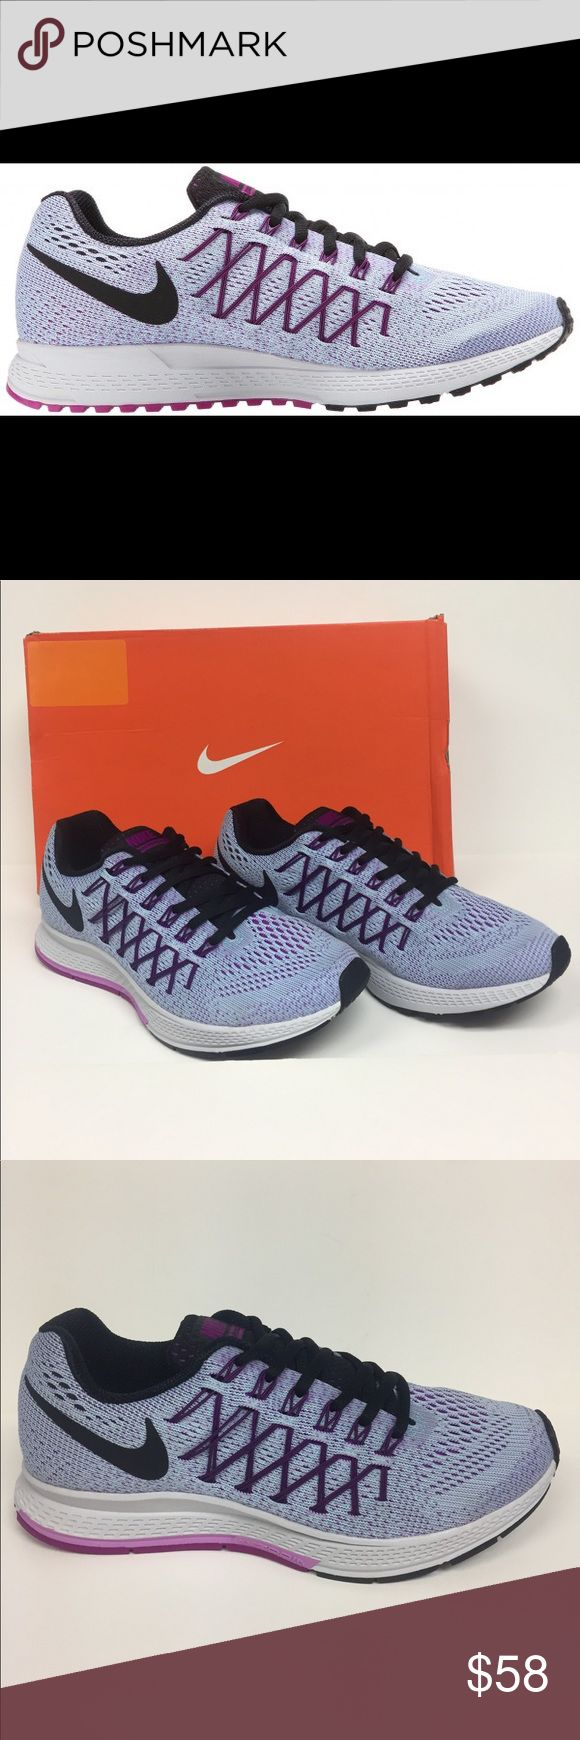 Nike Air Zoom Pegasus 32 749344 405 NIB Low top Nike great looking women sneaker. Lace closure. Nike swoosh branding on side panels. Zoom air unit. Perforated midsole for breathability and comfort. Color is black, fuchsia glow. Brand-new in box. Slight discoloring on one shoe at the Toe. It is photographed. Nike Shoes Sneakers